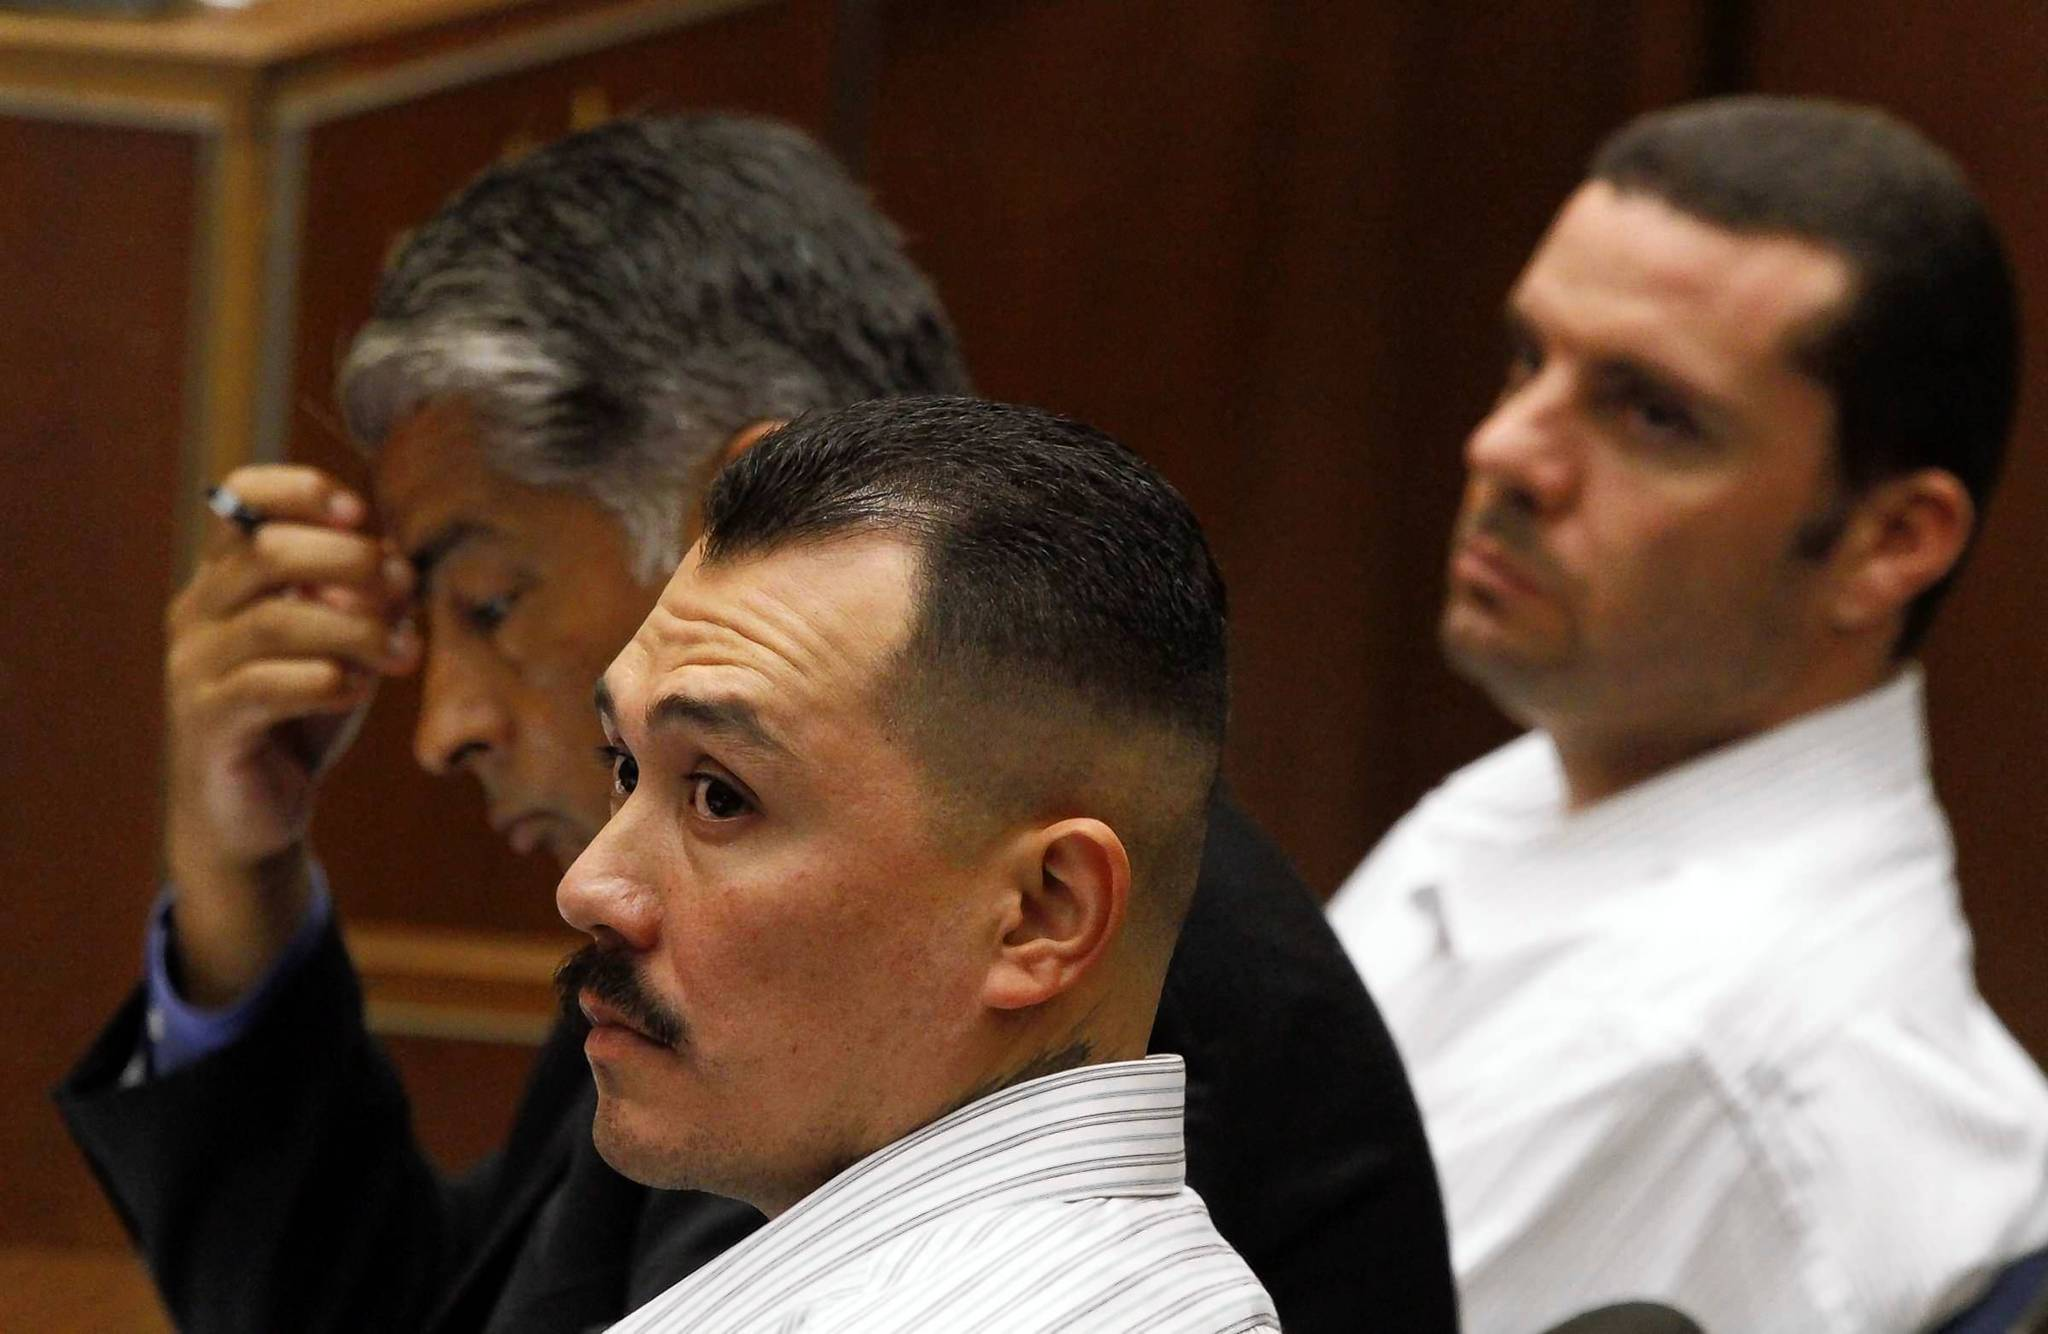 Marvin Norwood, right, his attorney Victor Escobedo and Louie Sanchez listen during the preliminary hearing on Friday.